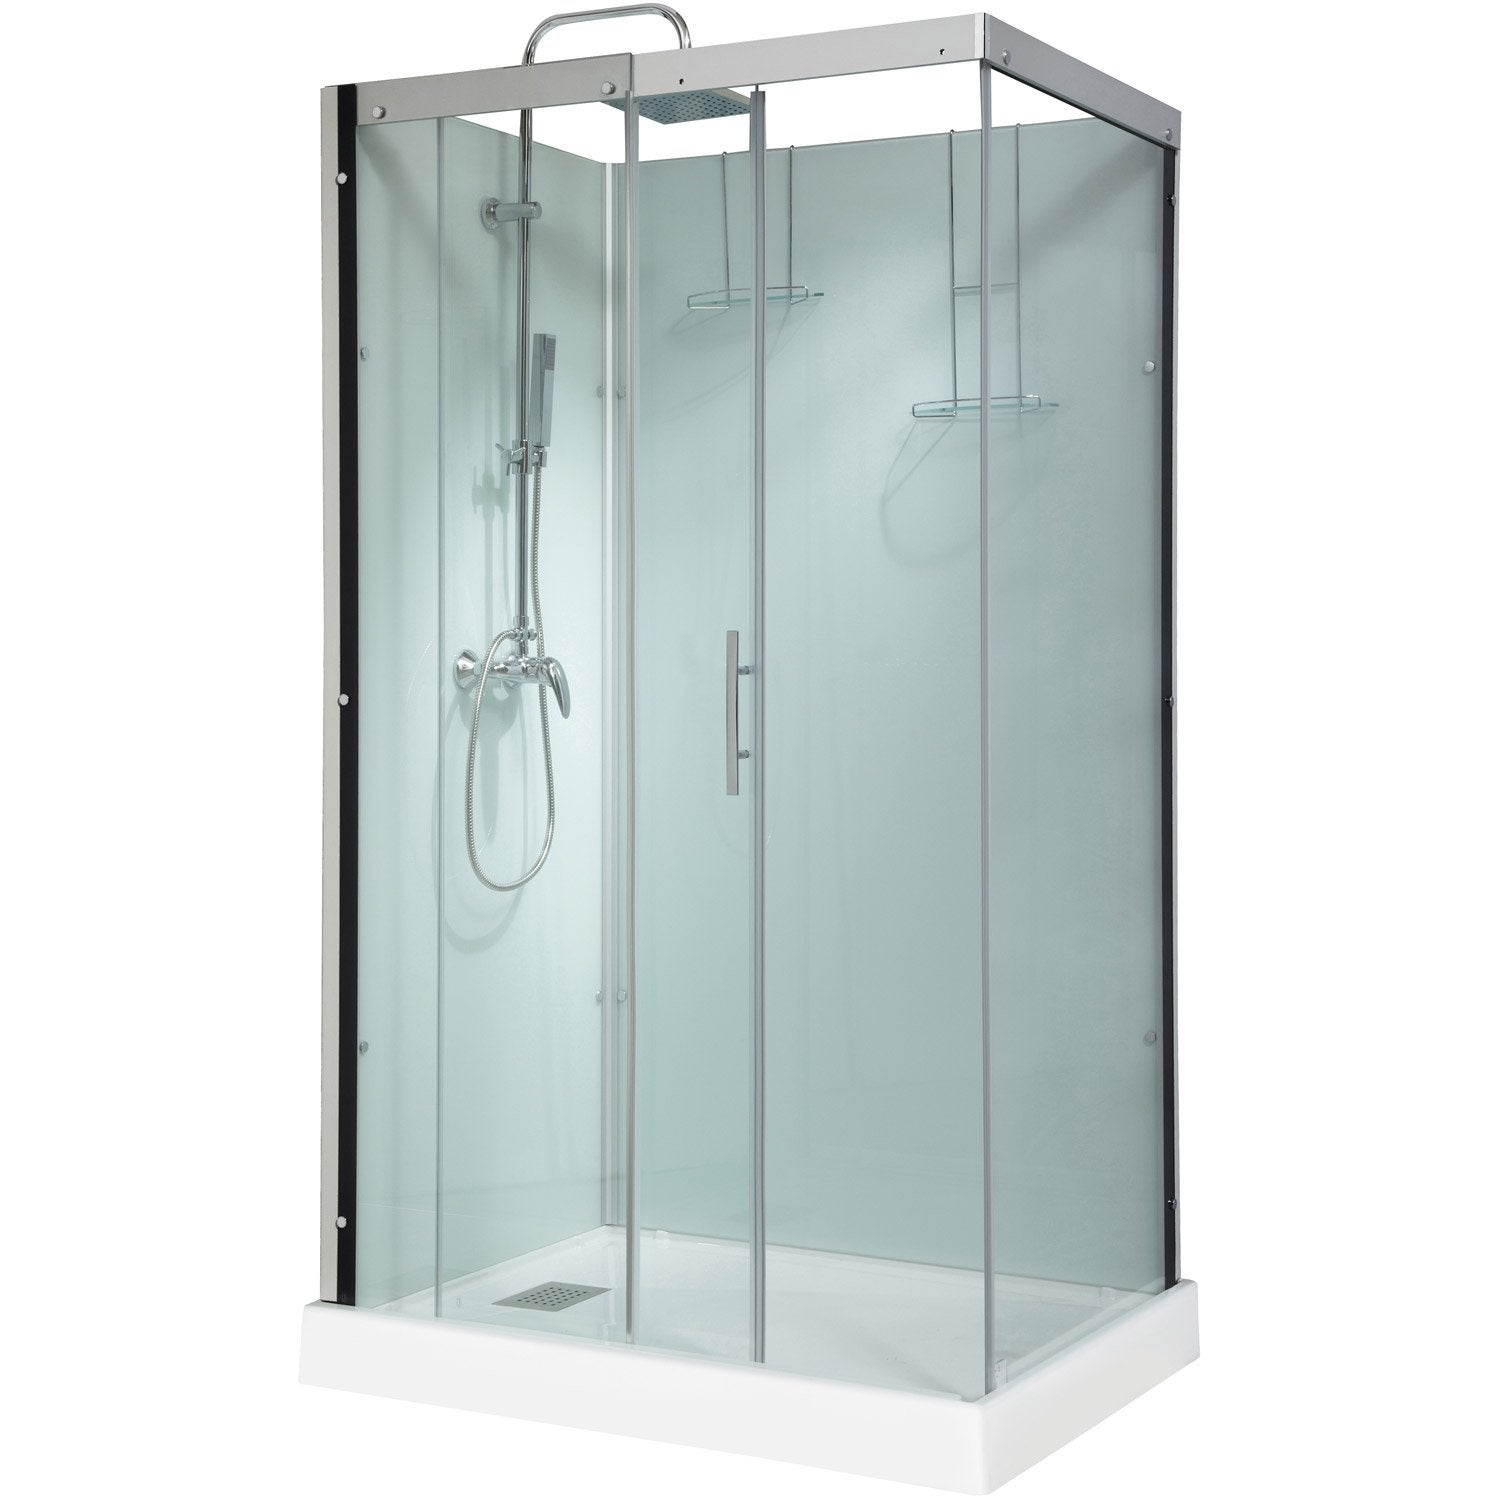 Cabine de douche rectangulaire 120x90 cm thalaglass 2 for Douche chez leroy merlin